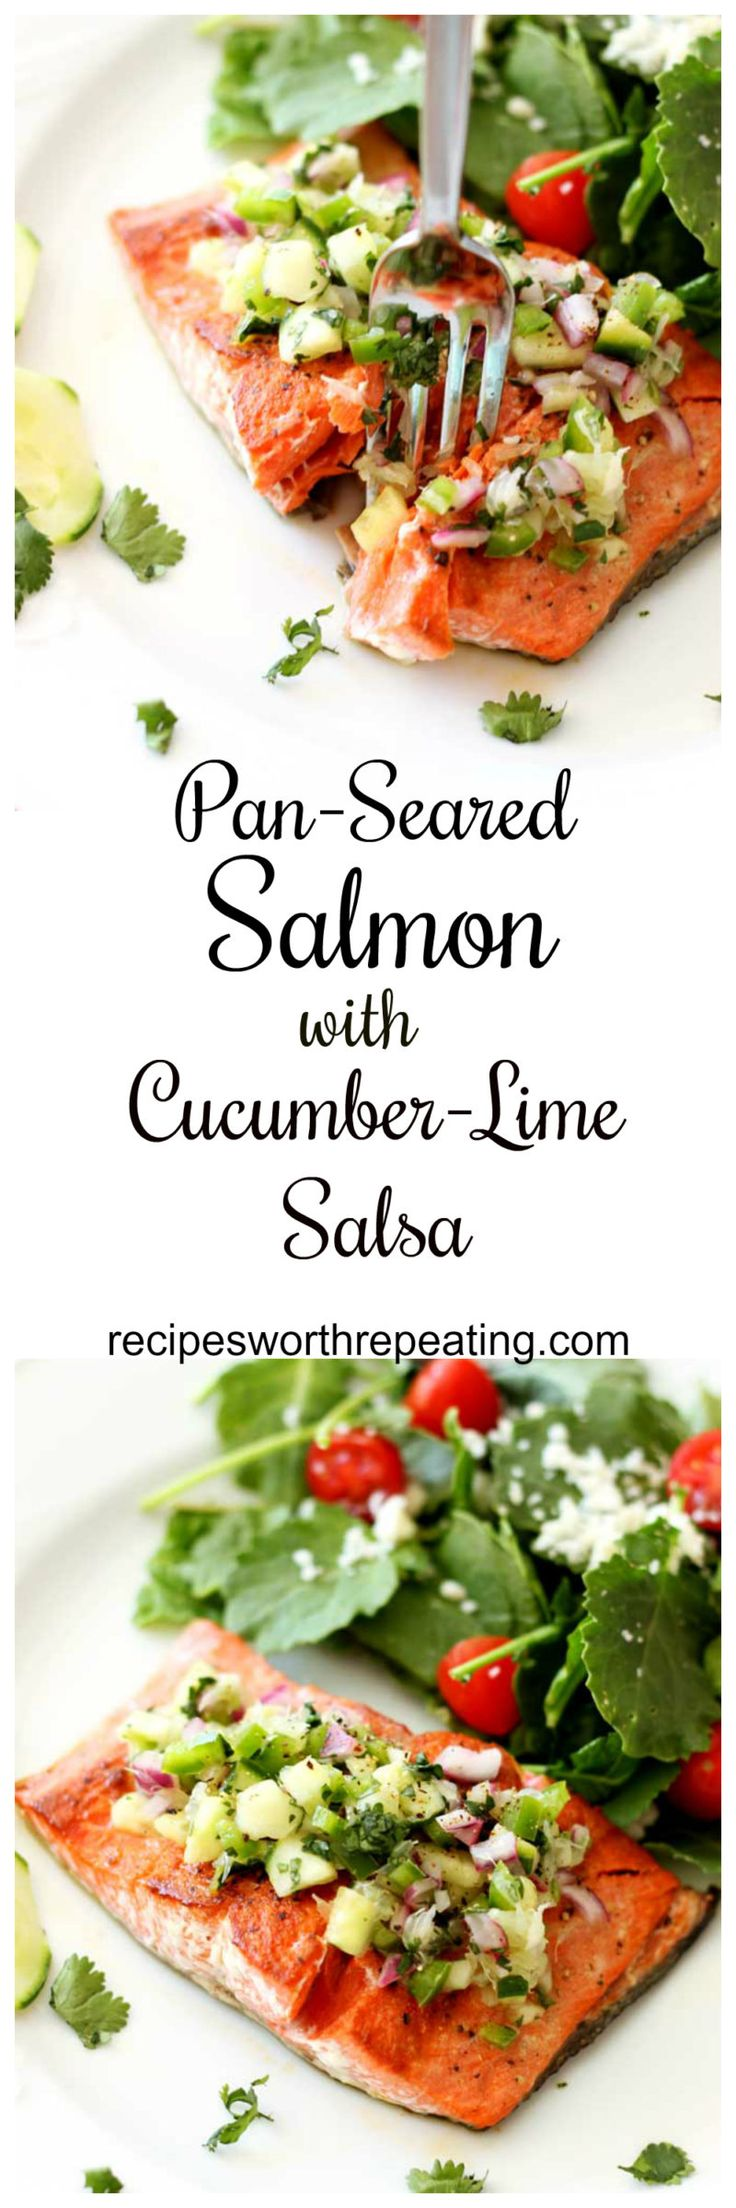 Fresh salmon is richly textured and highly flavorful! Adding this cucumber-lime salsa on top provides the perfect essence for your meal that everyone is guaranteed to love! Full of flavor, super healthy and gluten free! Fast and easy weeknight dinner! #sa